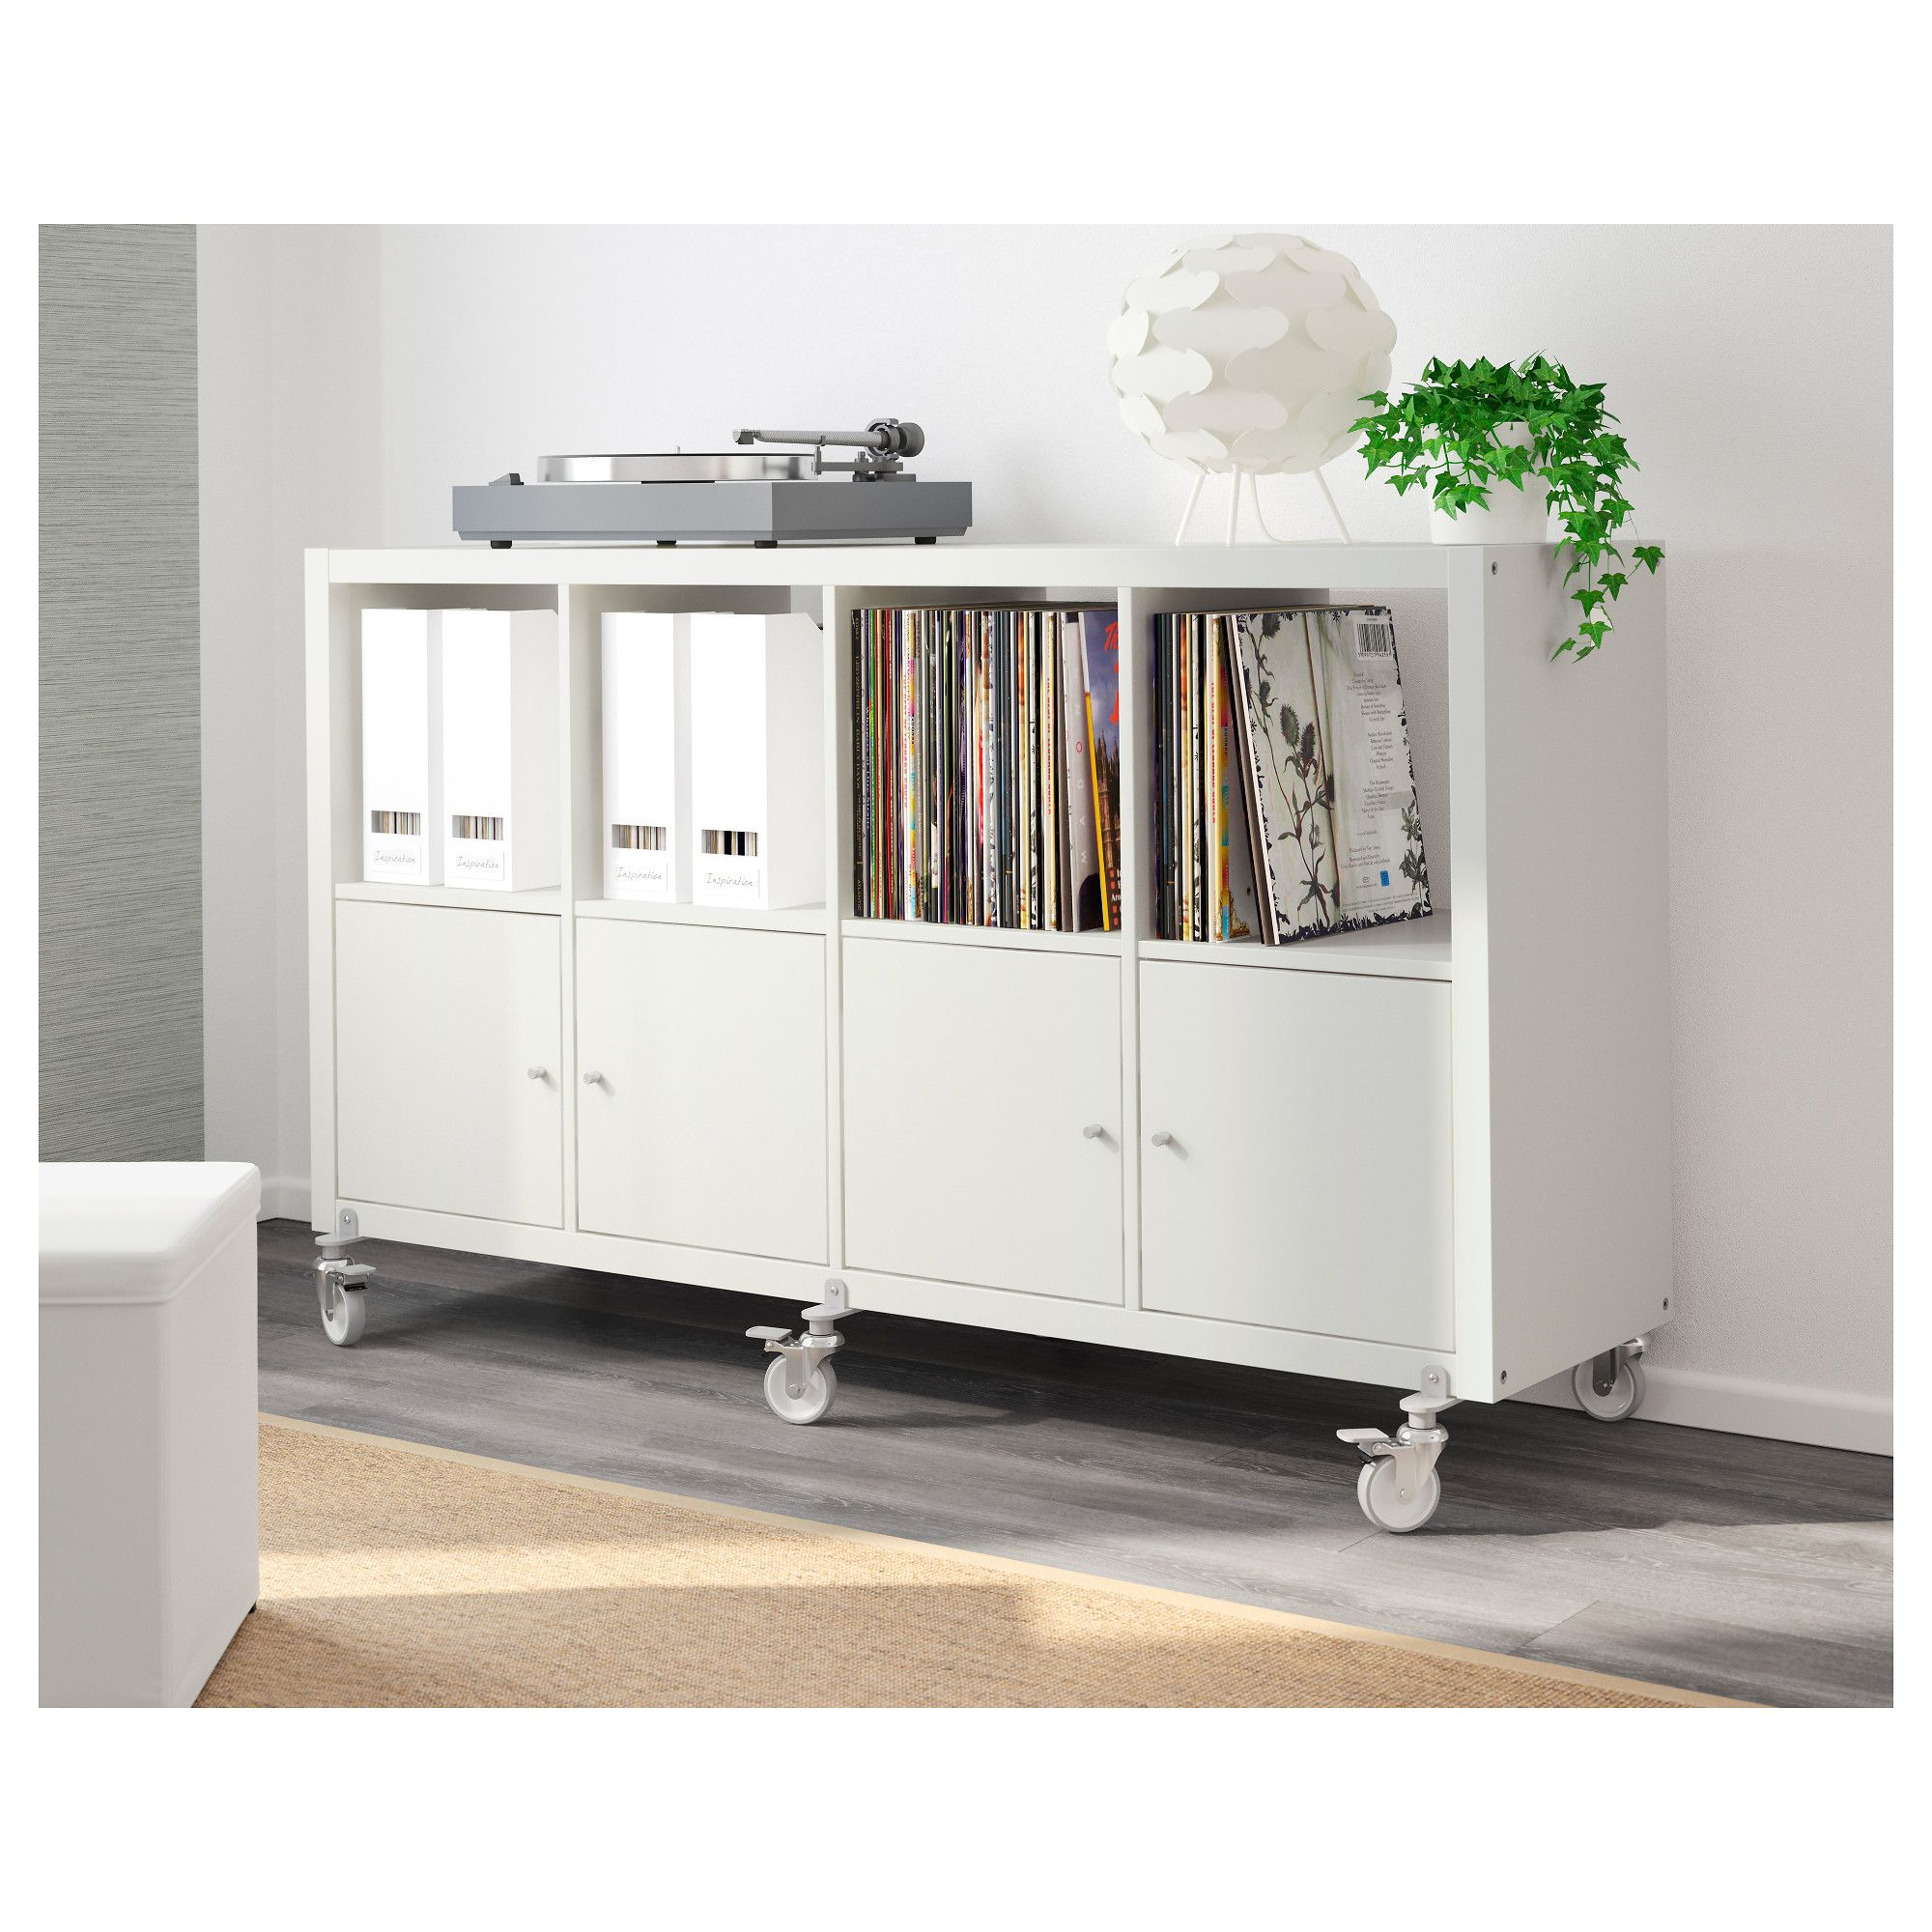 furniture and home furnishings ikea kallax shelving kallax shelf unit kallax shelving unit